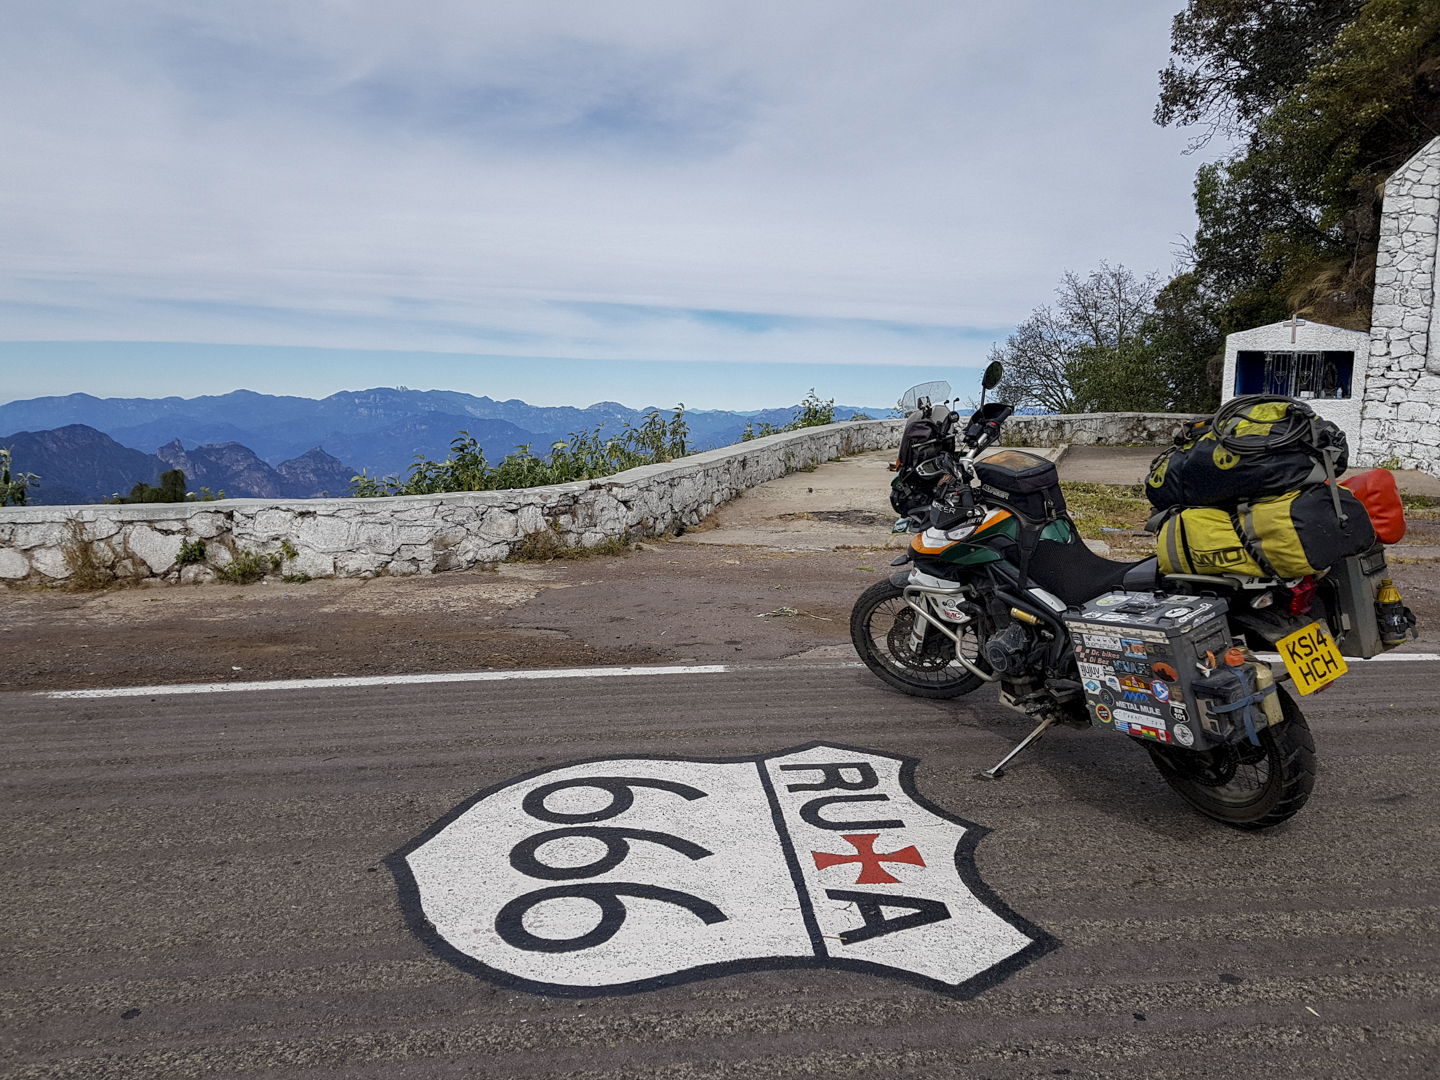 Epic Rides in Mexico – MEX 40/40D The Devils Backbone